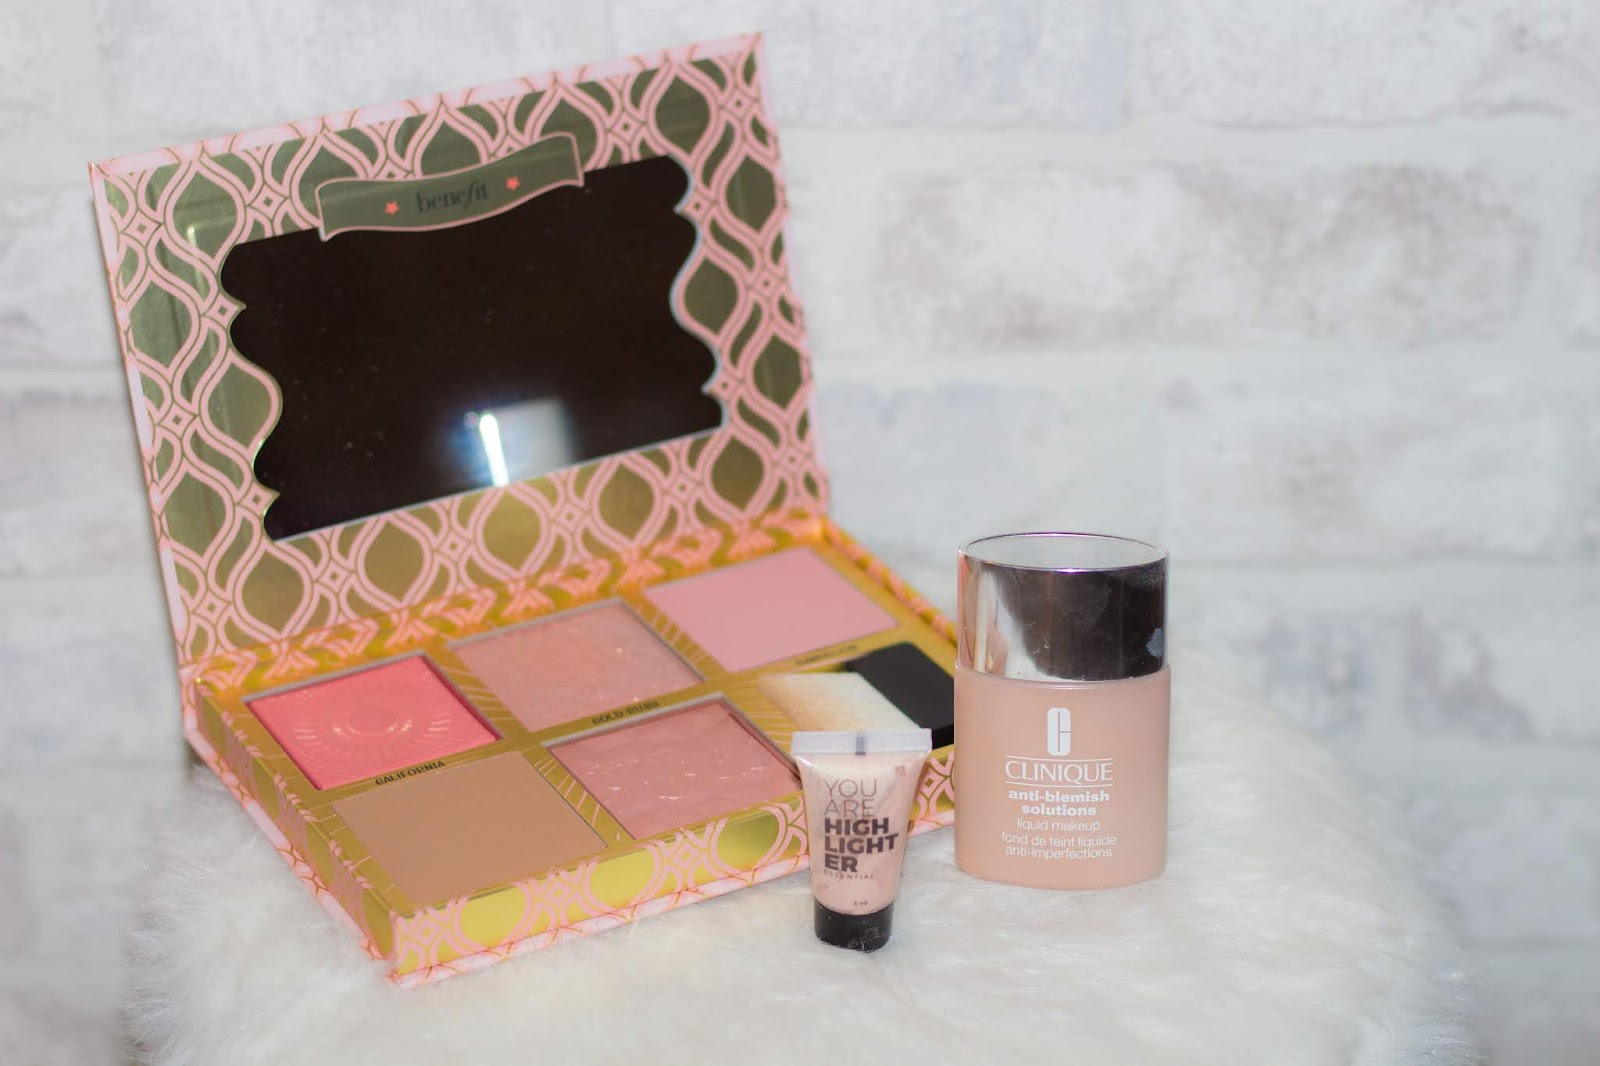 maquillage - teint - benefit - clinique